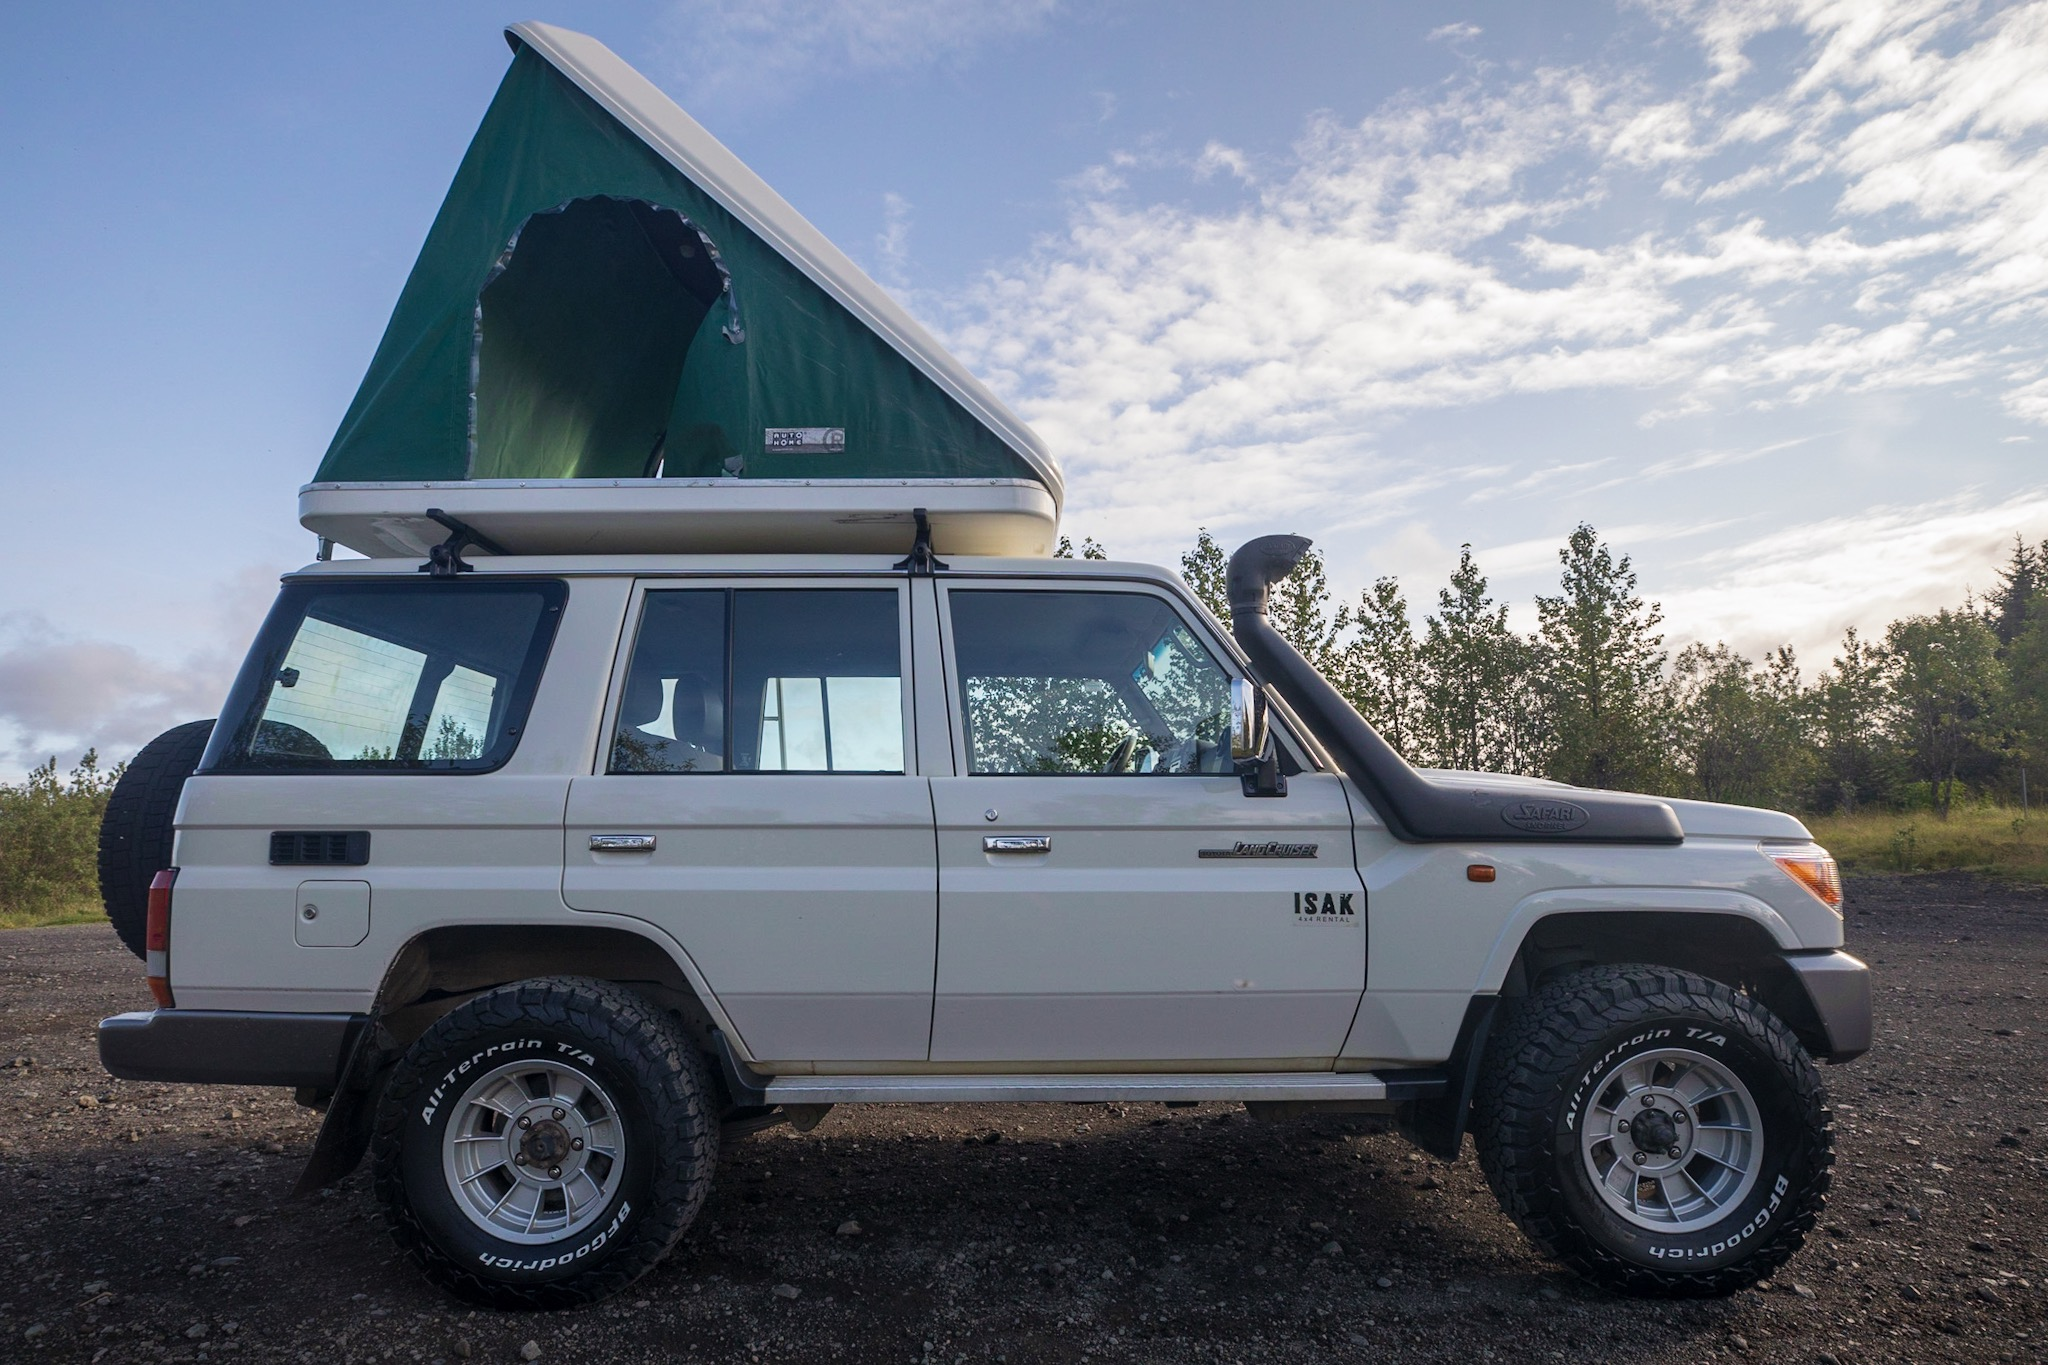 Land Cruiser 76 w/Roof top tent